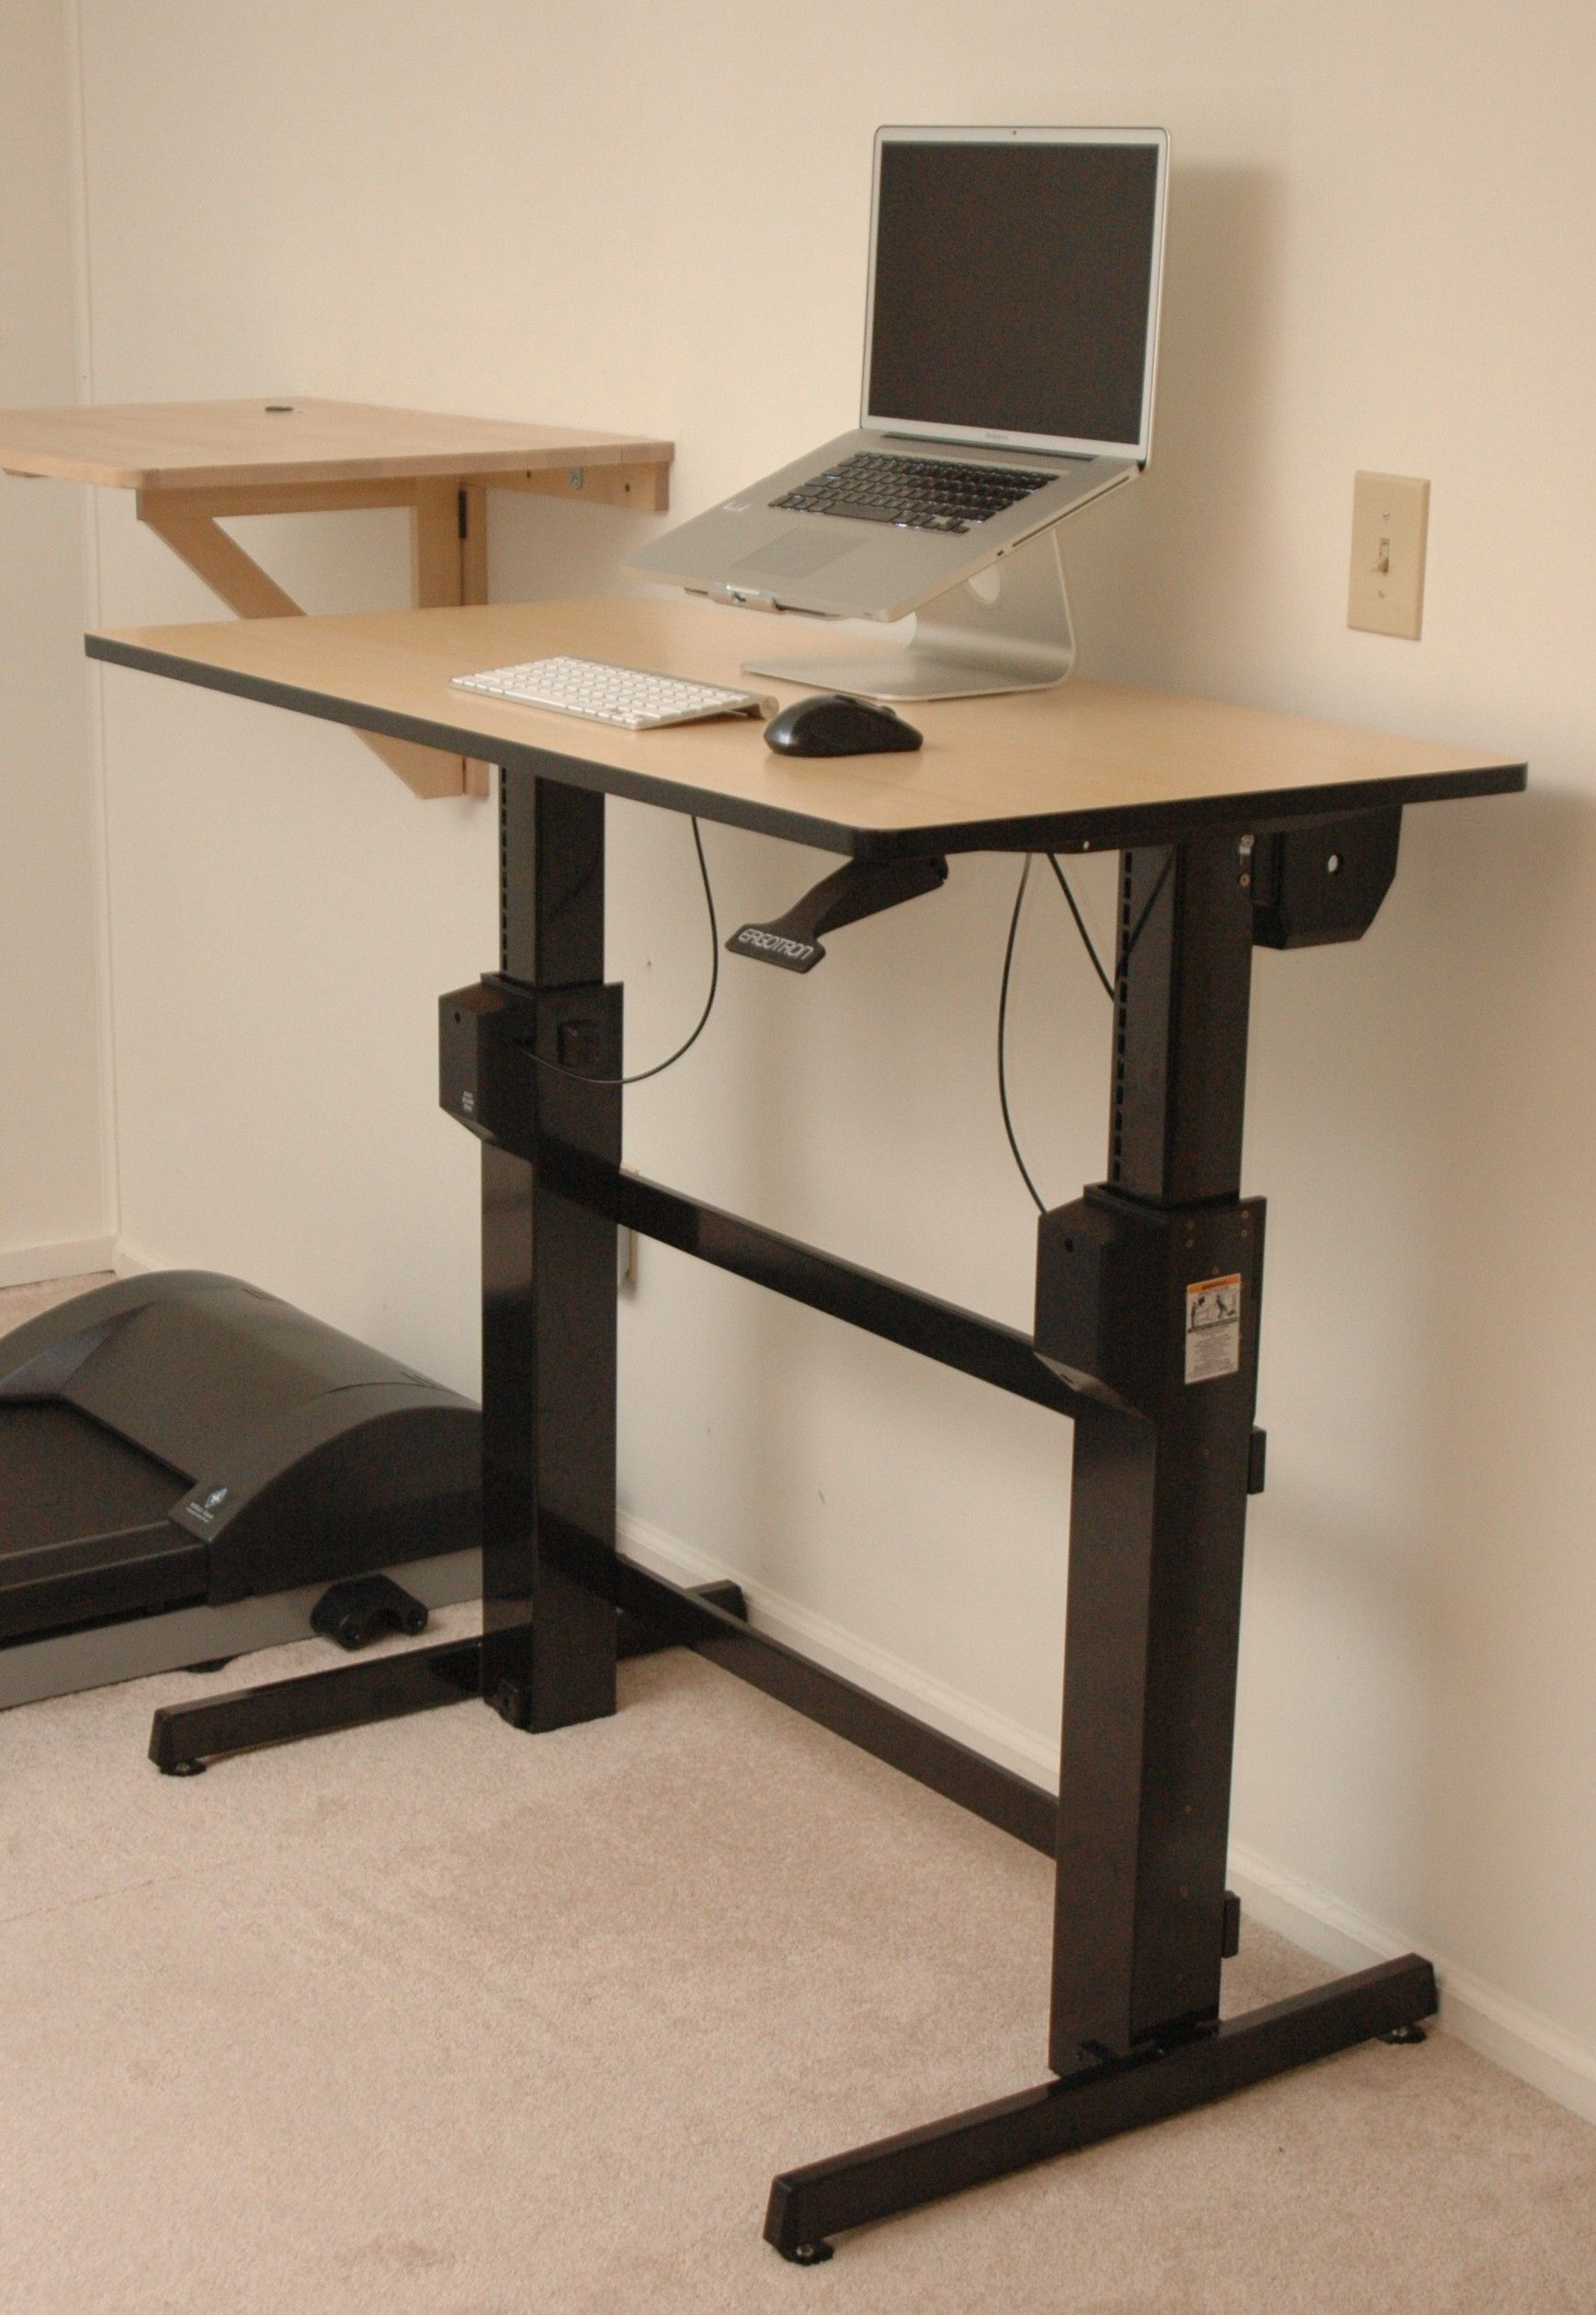 workfit adjustable of beautiful height stand desk and corner sit standing uplift workstation inspirational s